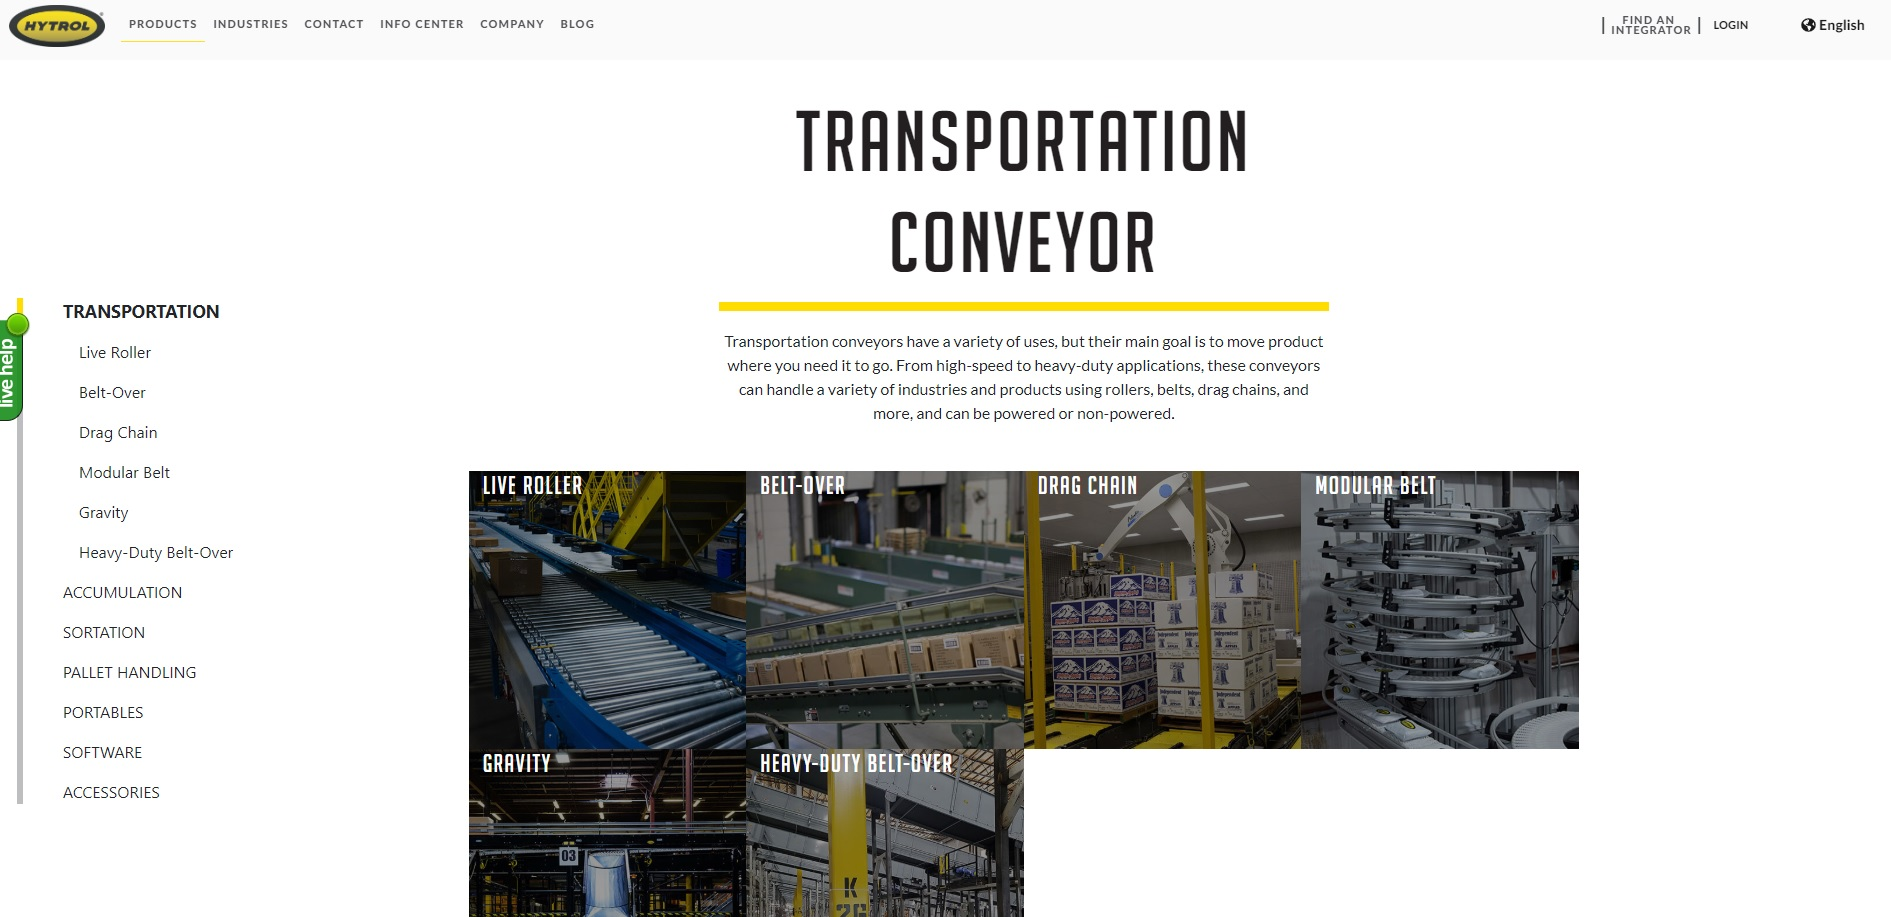 Texas Conveyors Manufacturers Conveyor Systems